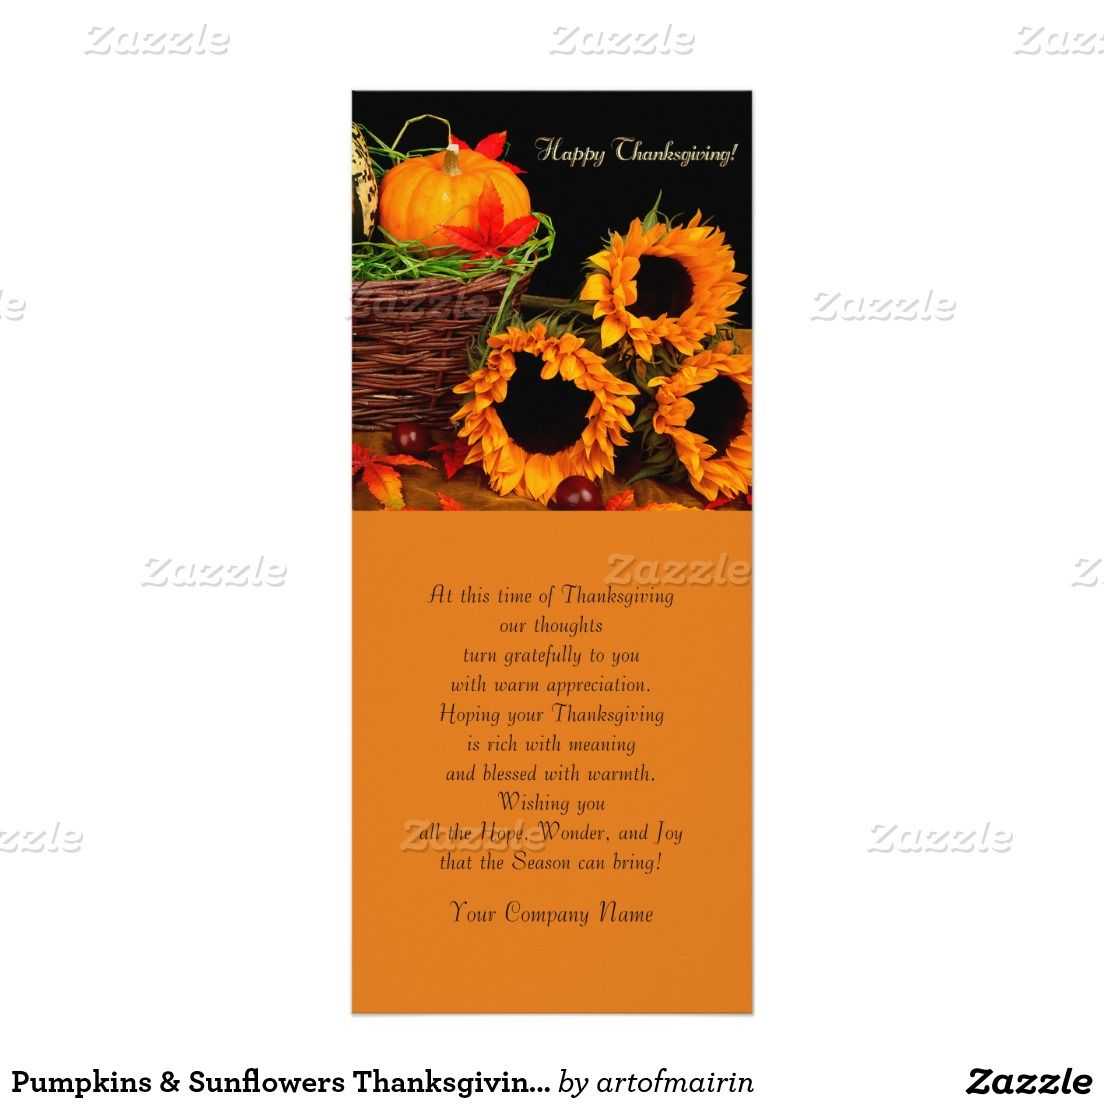 Happy thanksgiving pumpkins sunflowers thanksgiving pumpkins sunflowers thanksgiving customizable corporate business or personal flat greeting cards kristyandbryce Image collections